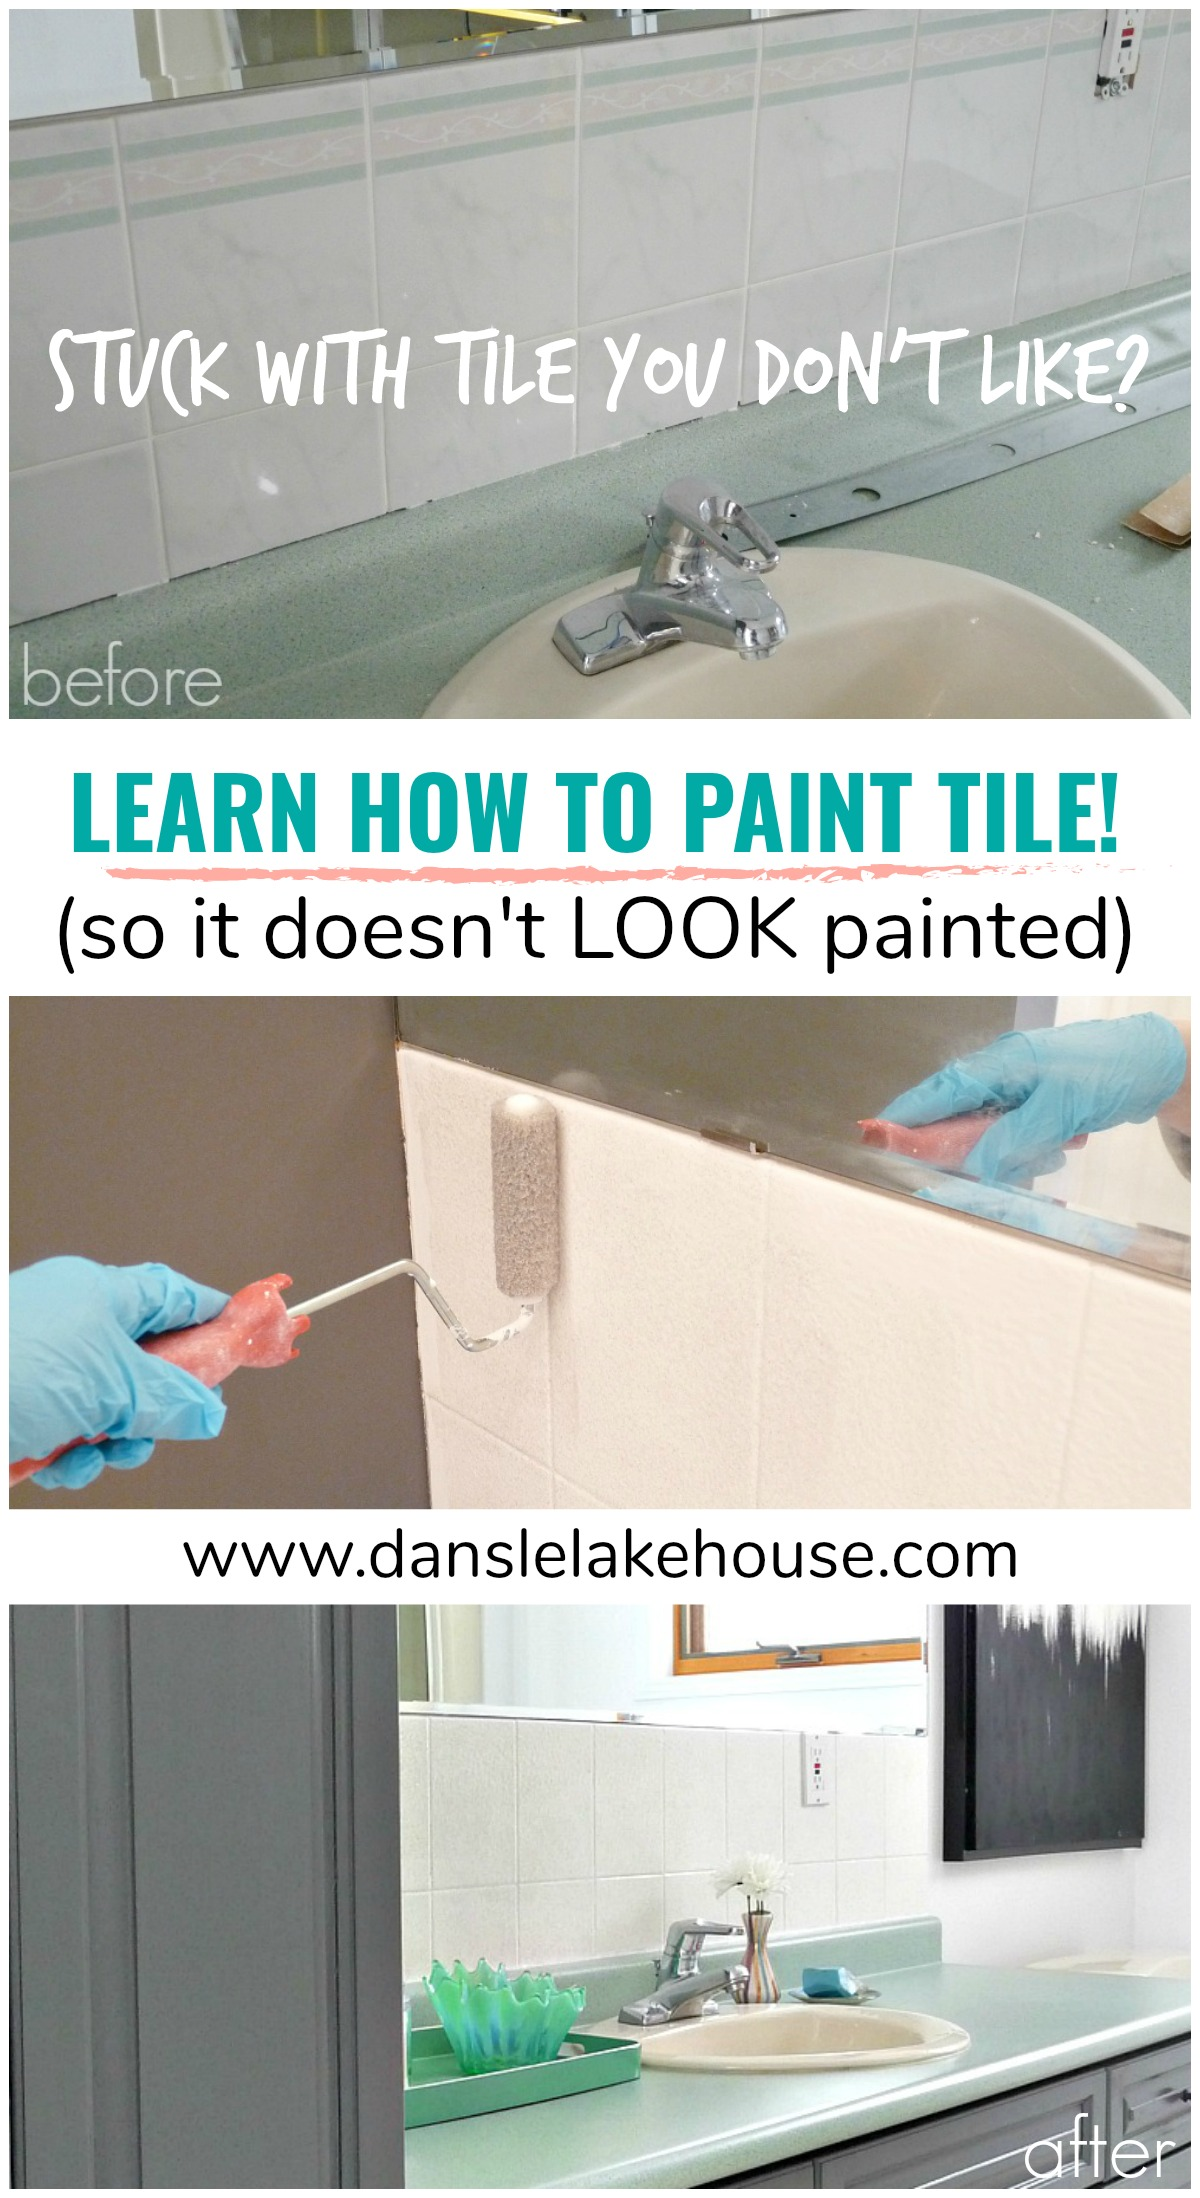 Learn How to Paint Tile